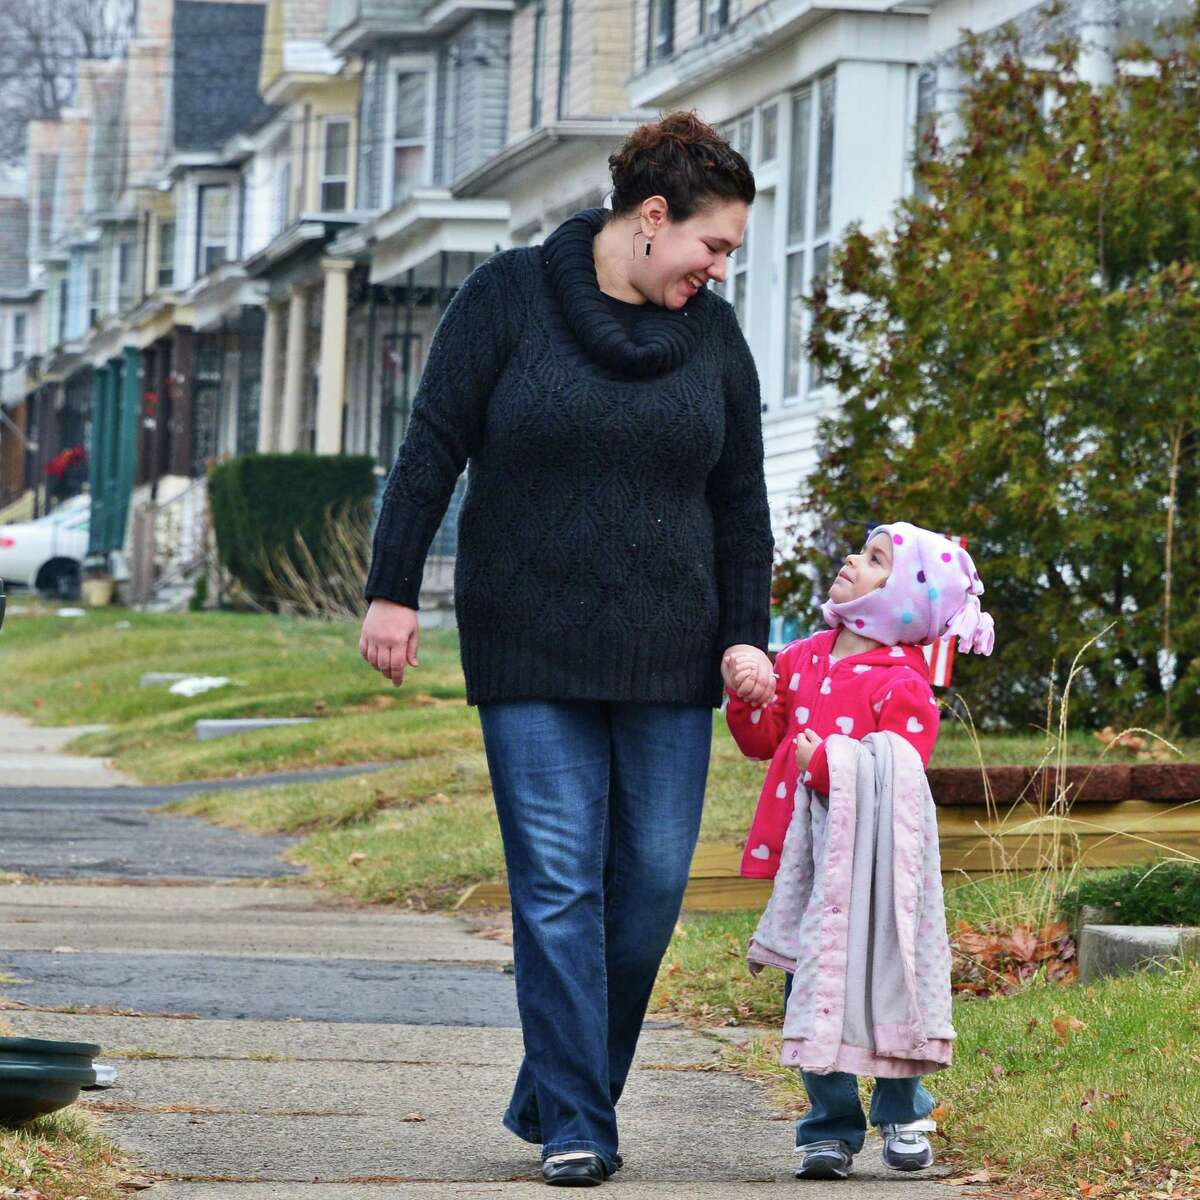 Julie Utter and daughter Chloe, 3, on the sidewalk outside their Snowden Avenue home in 2013, in Schenectady, NY. (John Carl D'Annibale / Times Union)